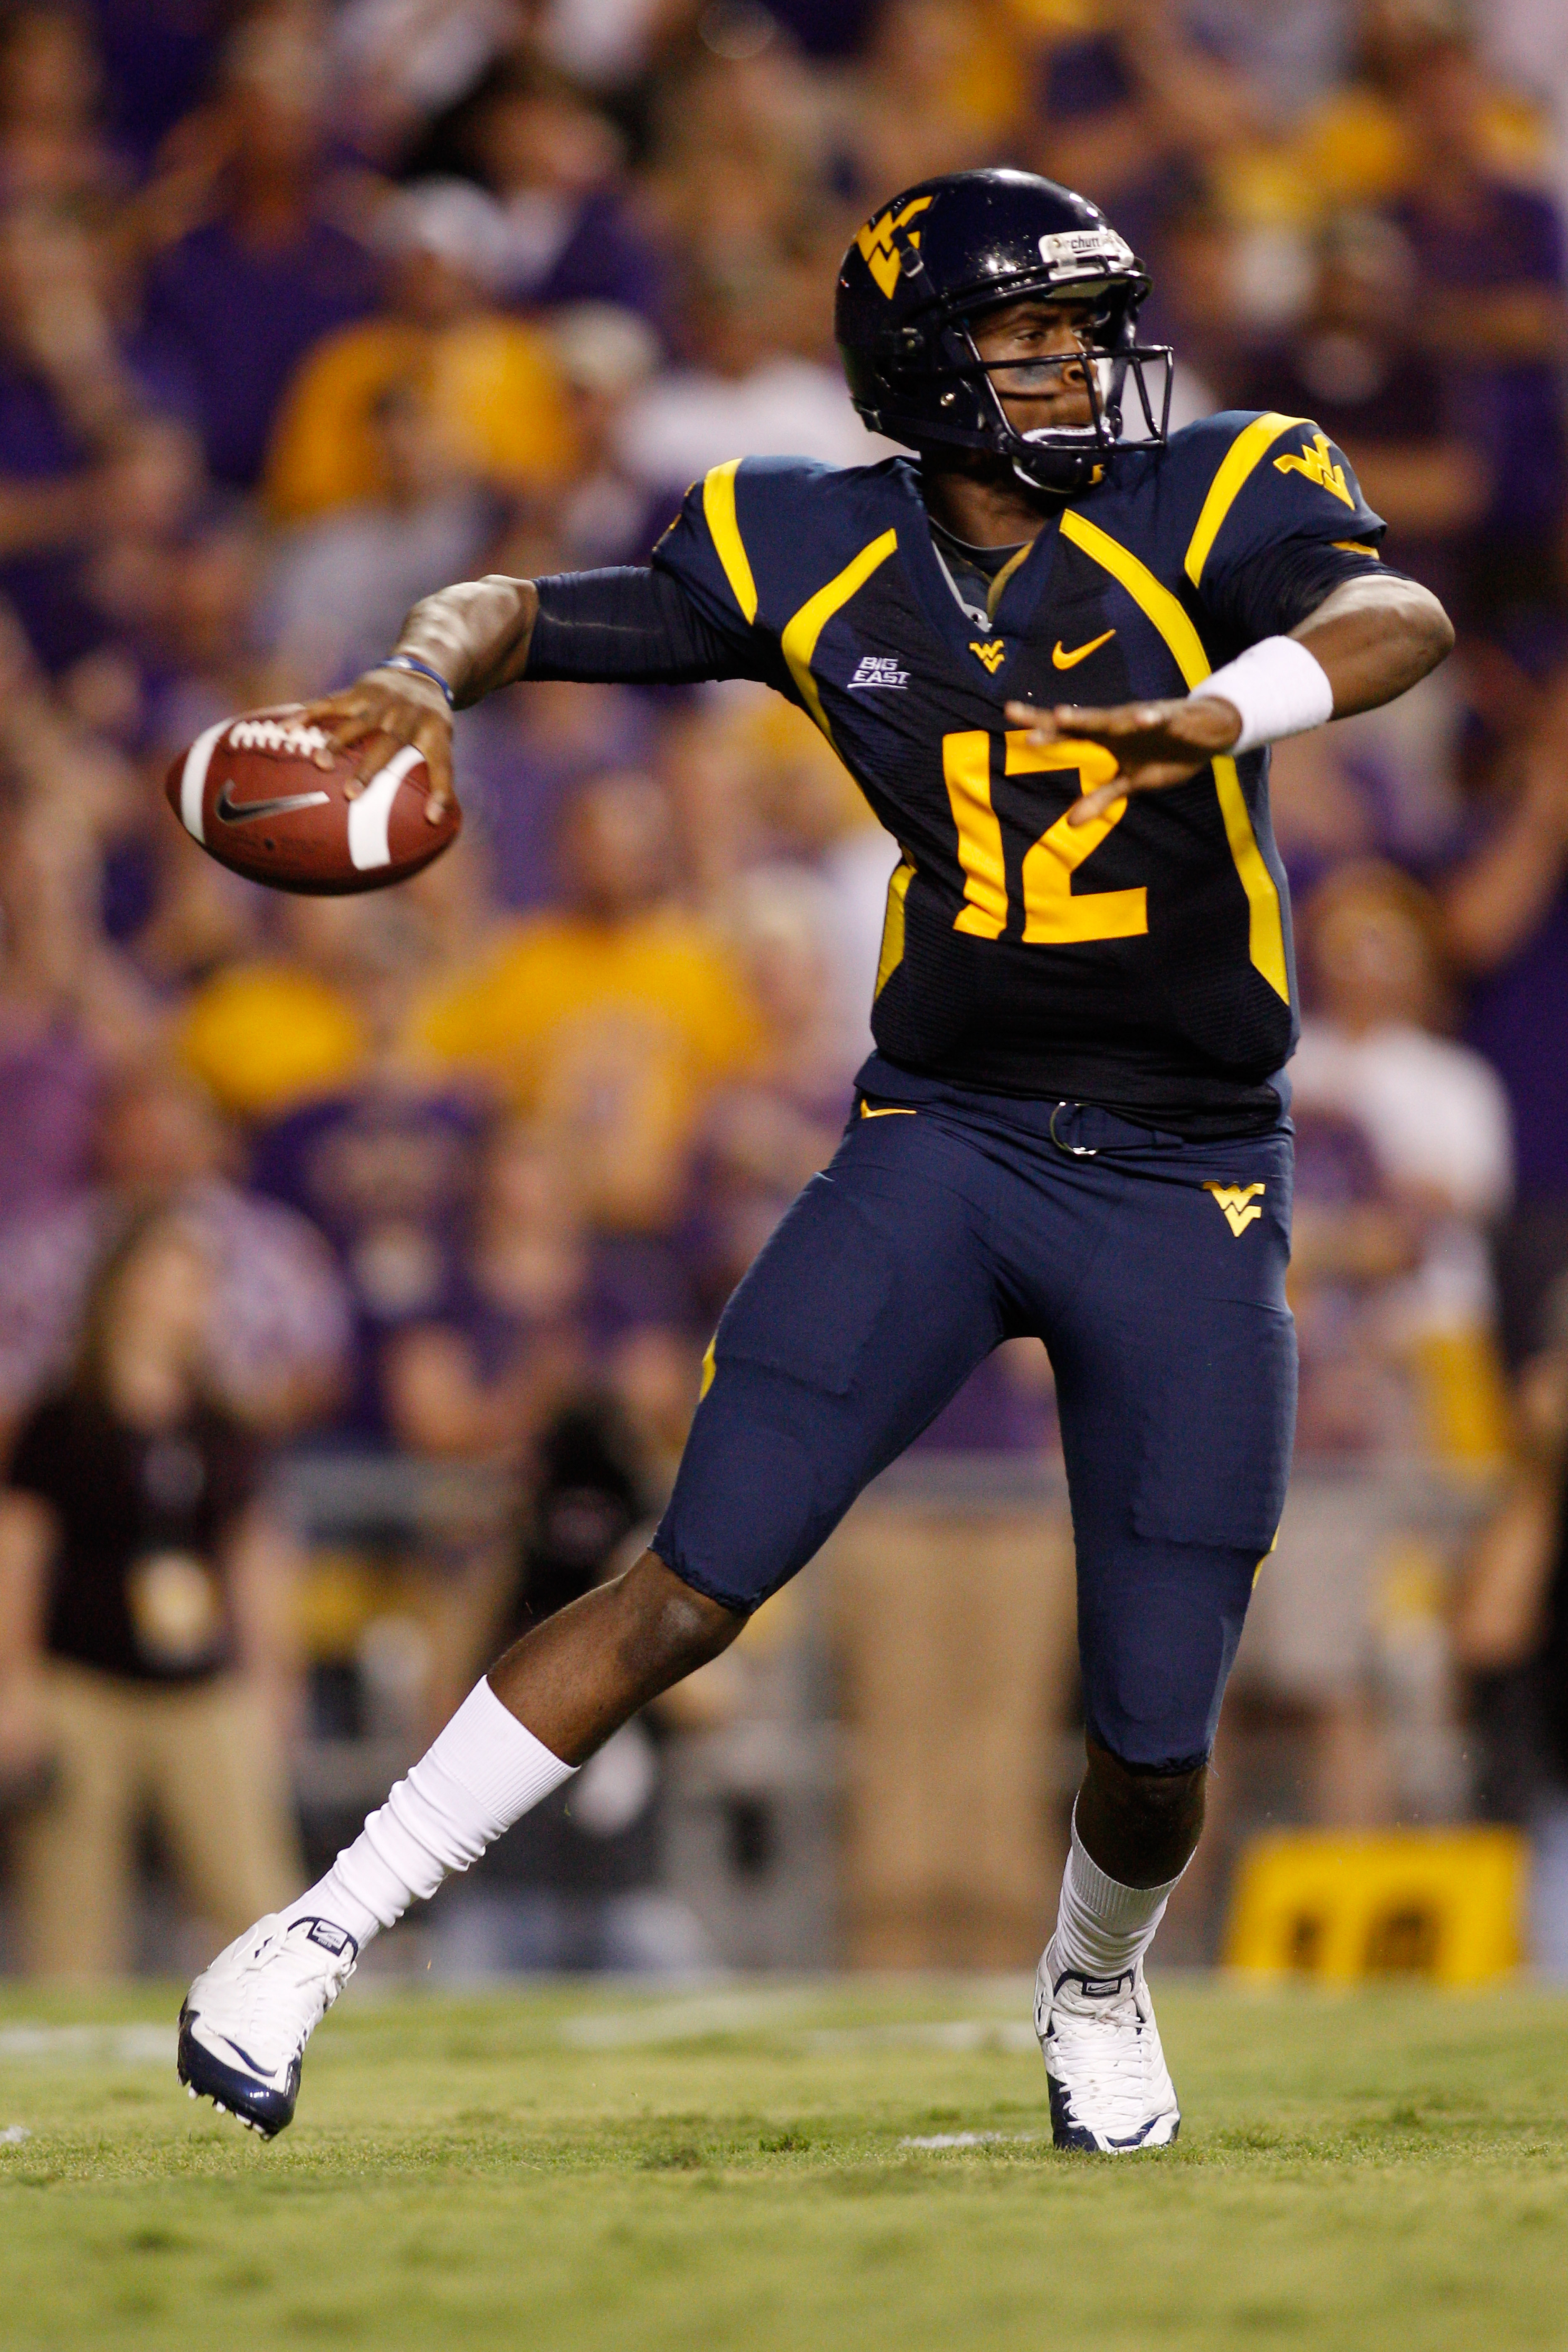 BATON ROUGE, LA - SEPTEMBER 25:  Quarterback Geno Smith #12 of the West Virginia Mountaineers looks to throw a pass against the Louisiana State University Tigers at Tiger Stadium on September 25, 2010 in Baton Rouge, Louisiana.  (Photo by Chris Graythen/G